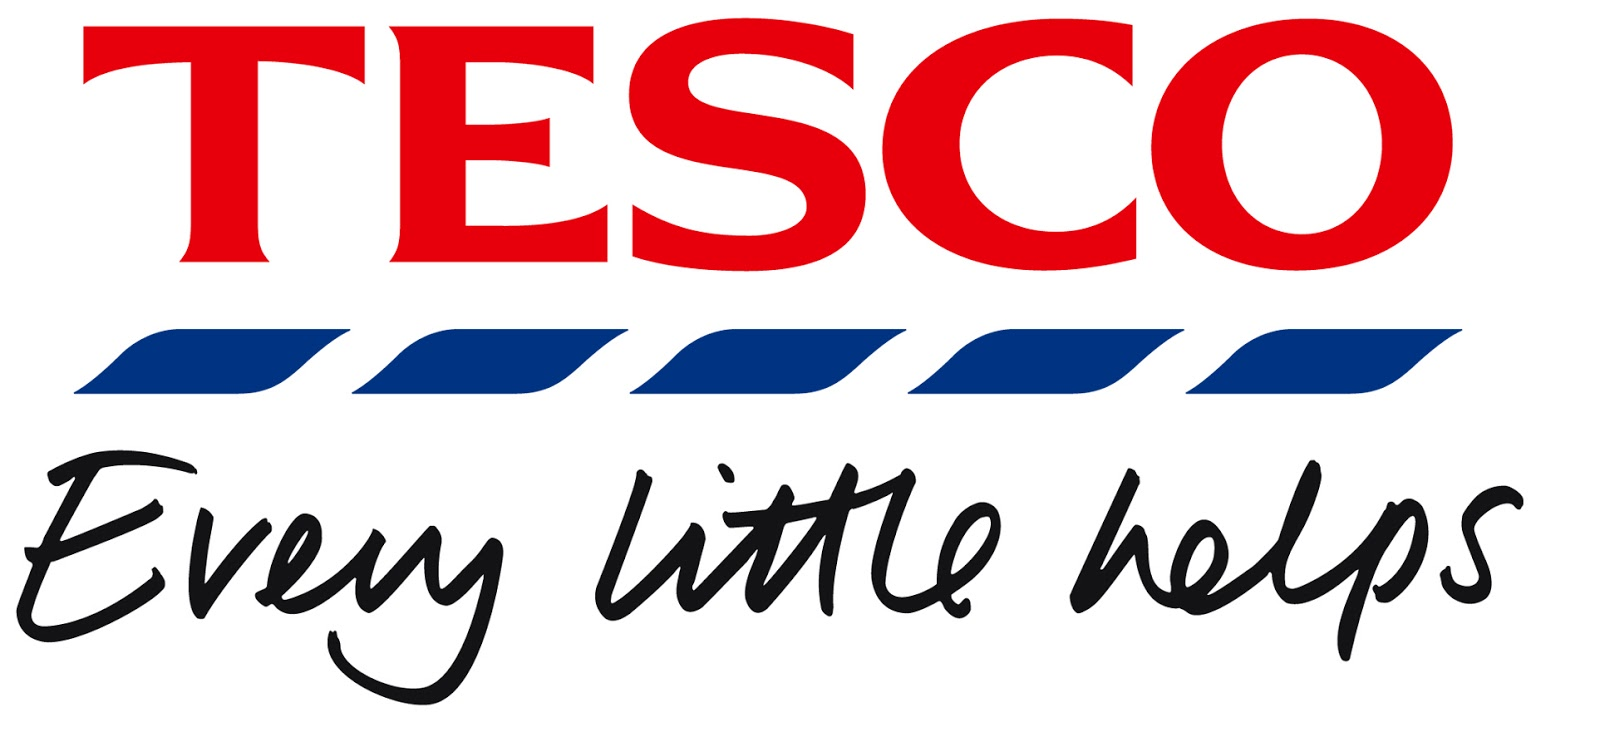 https://facebook.com/keithtesco